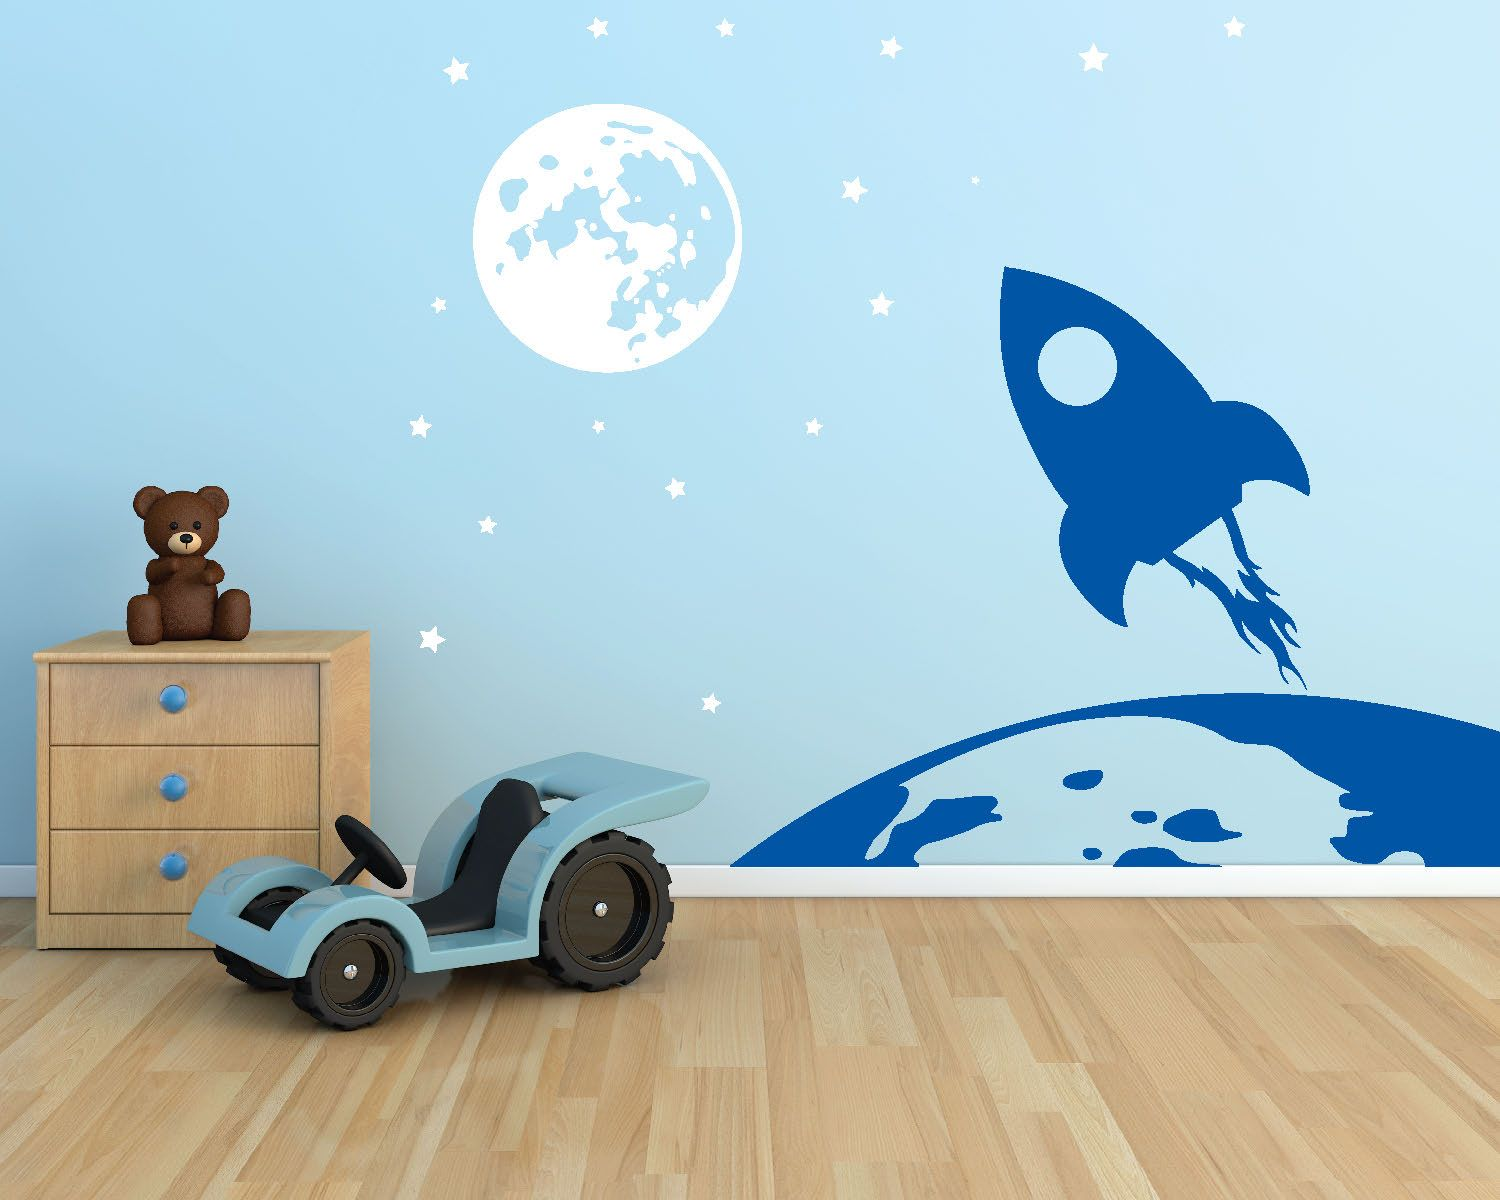 Earth Rocket To The Moon  Die Cut Vinyl Wall Decals Custom - Custom cut vinyl wall decals